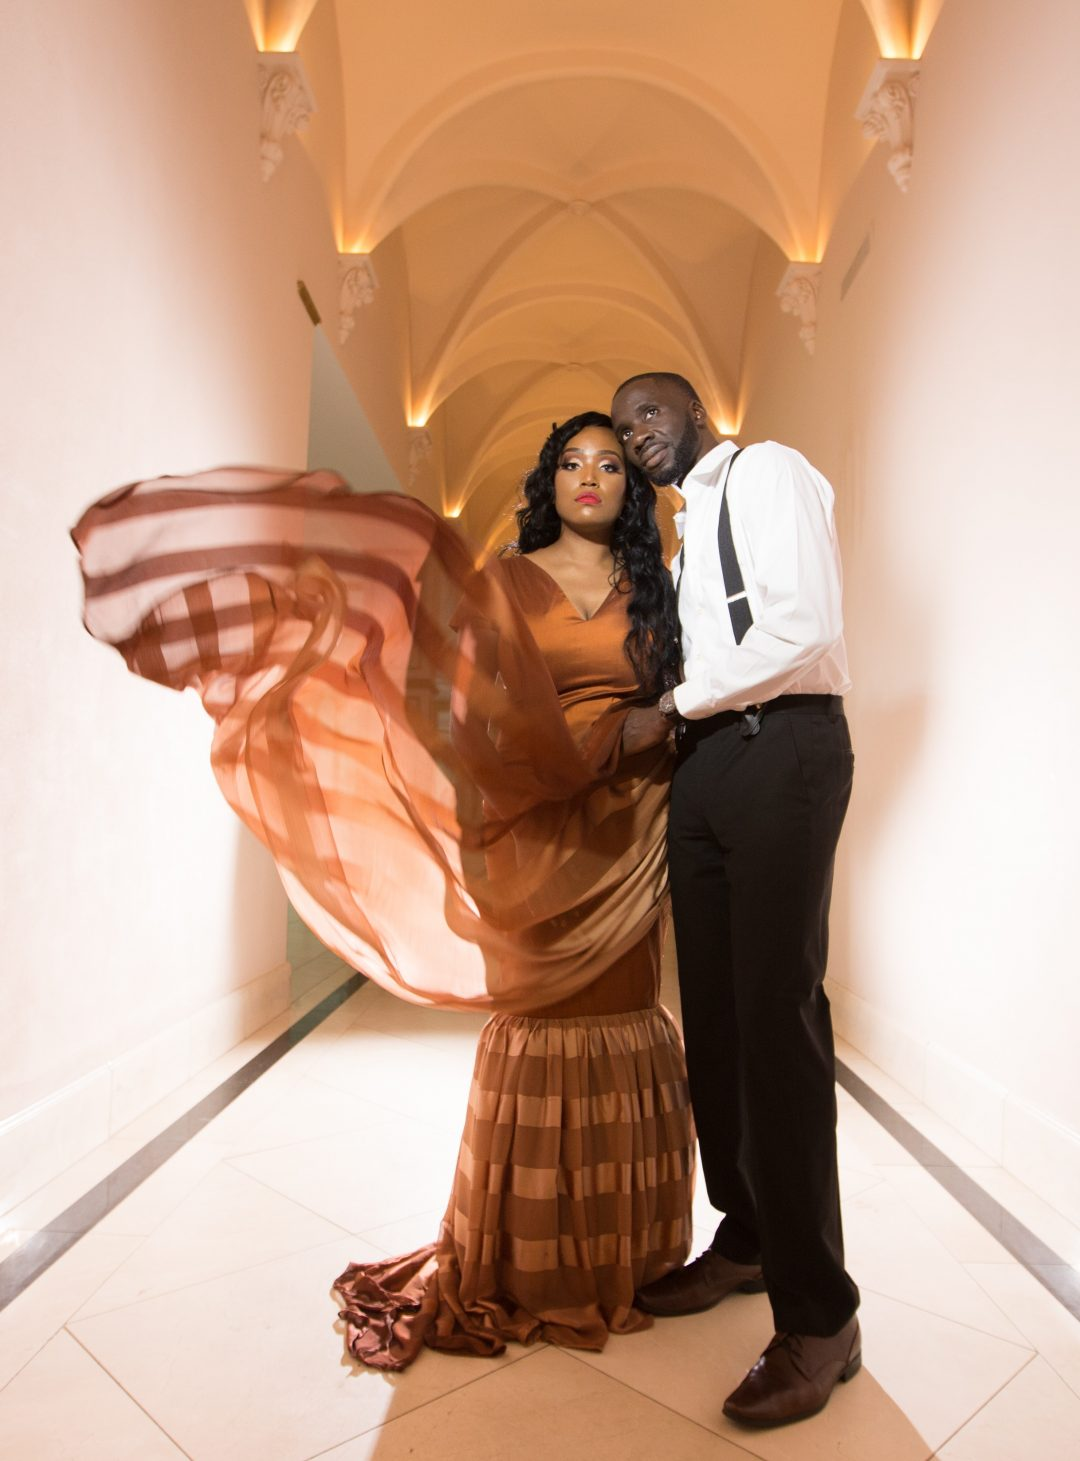 Nigerian Wedding Photographer | Kimberly & Adeniyi's Engagement Session at the Chateau Cocomar Featured in BlackBride.com